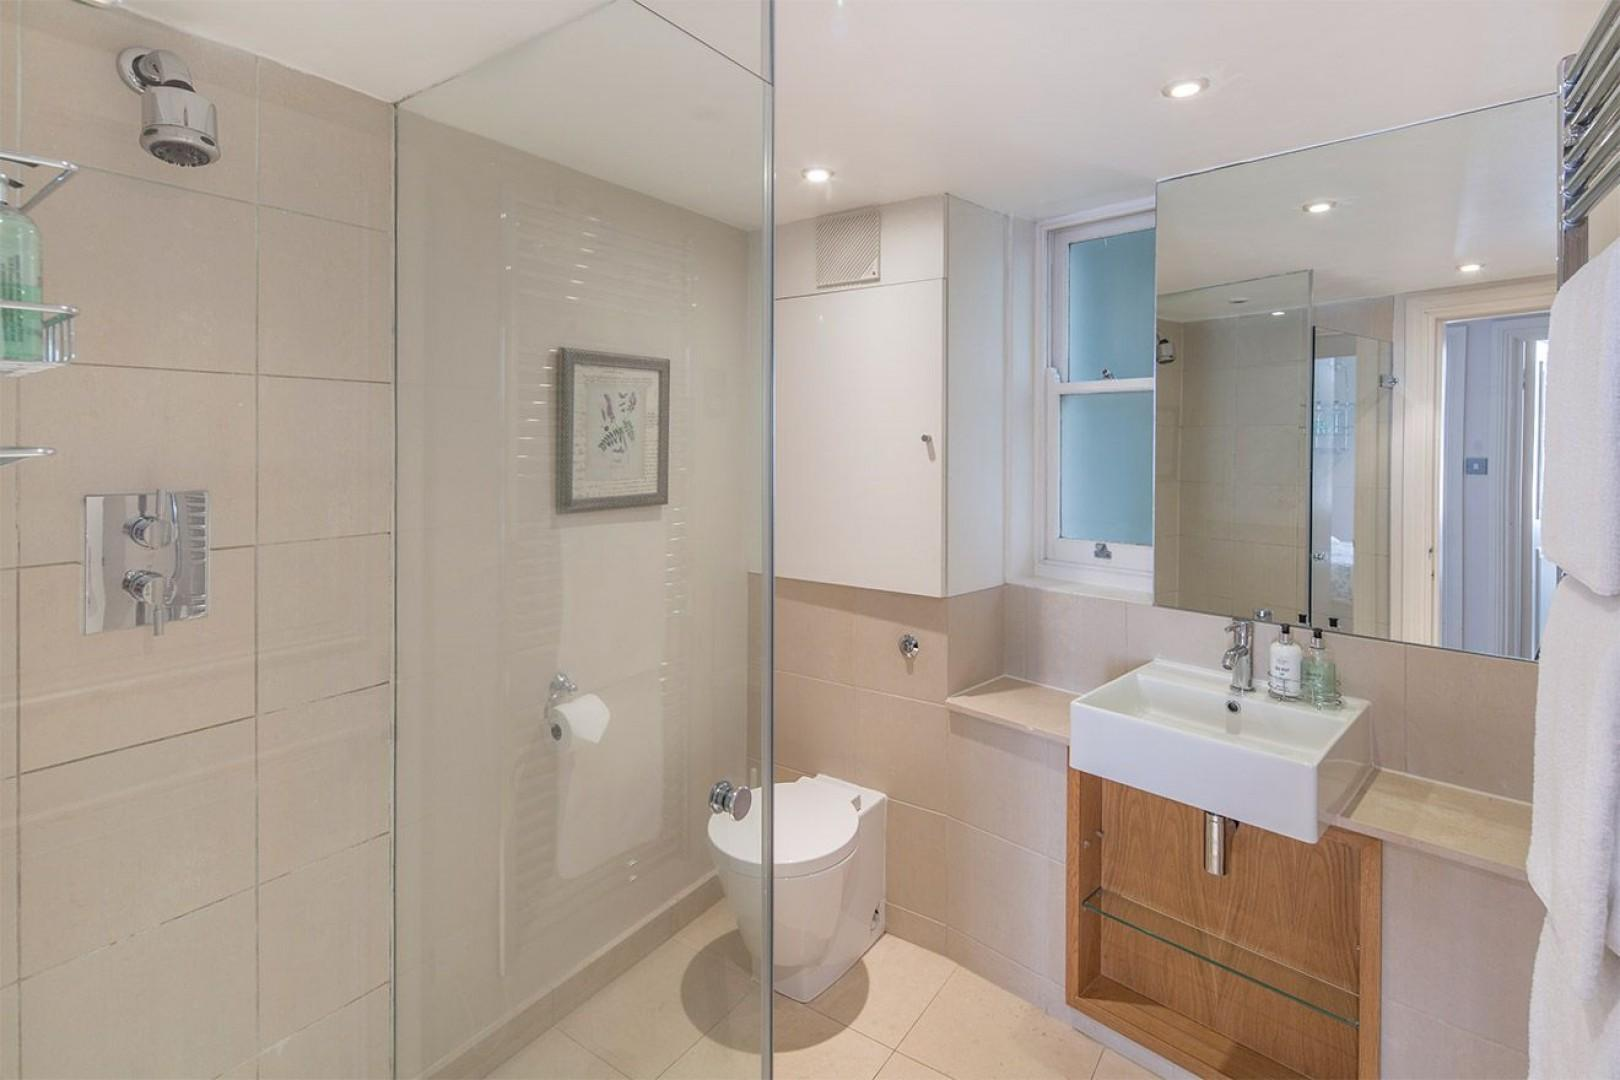 Second bathroom with shower, toilet and sink